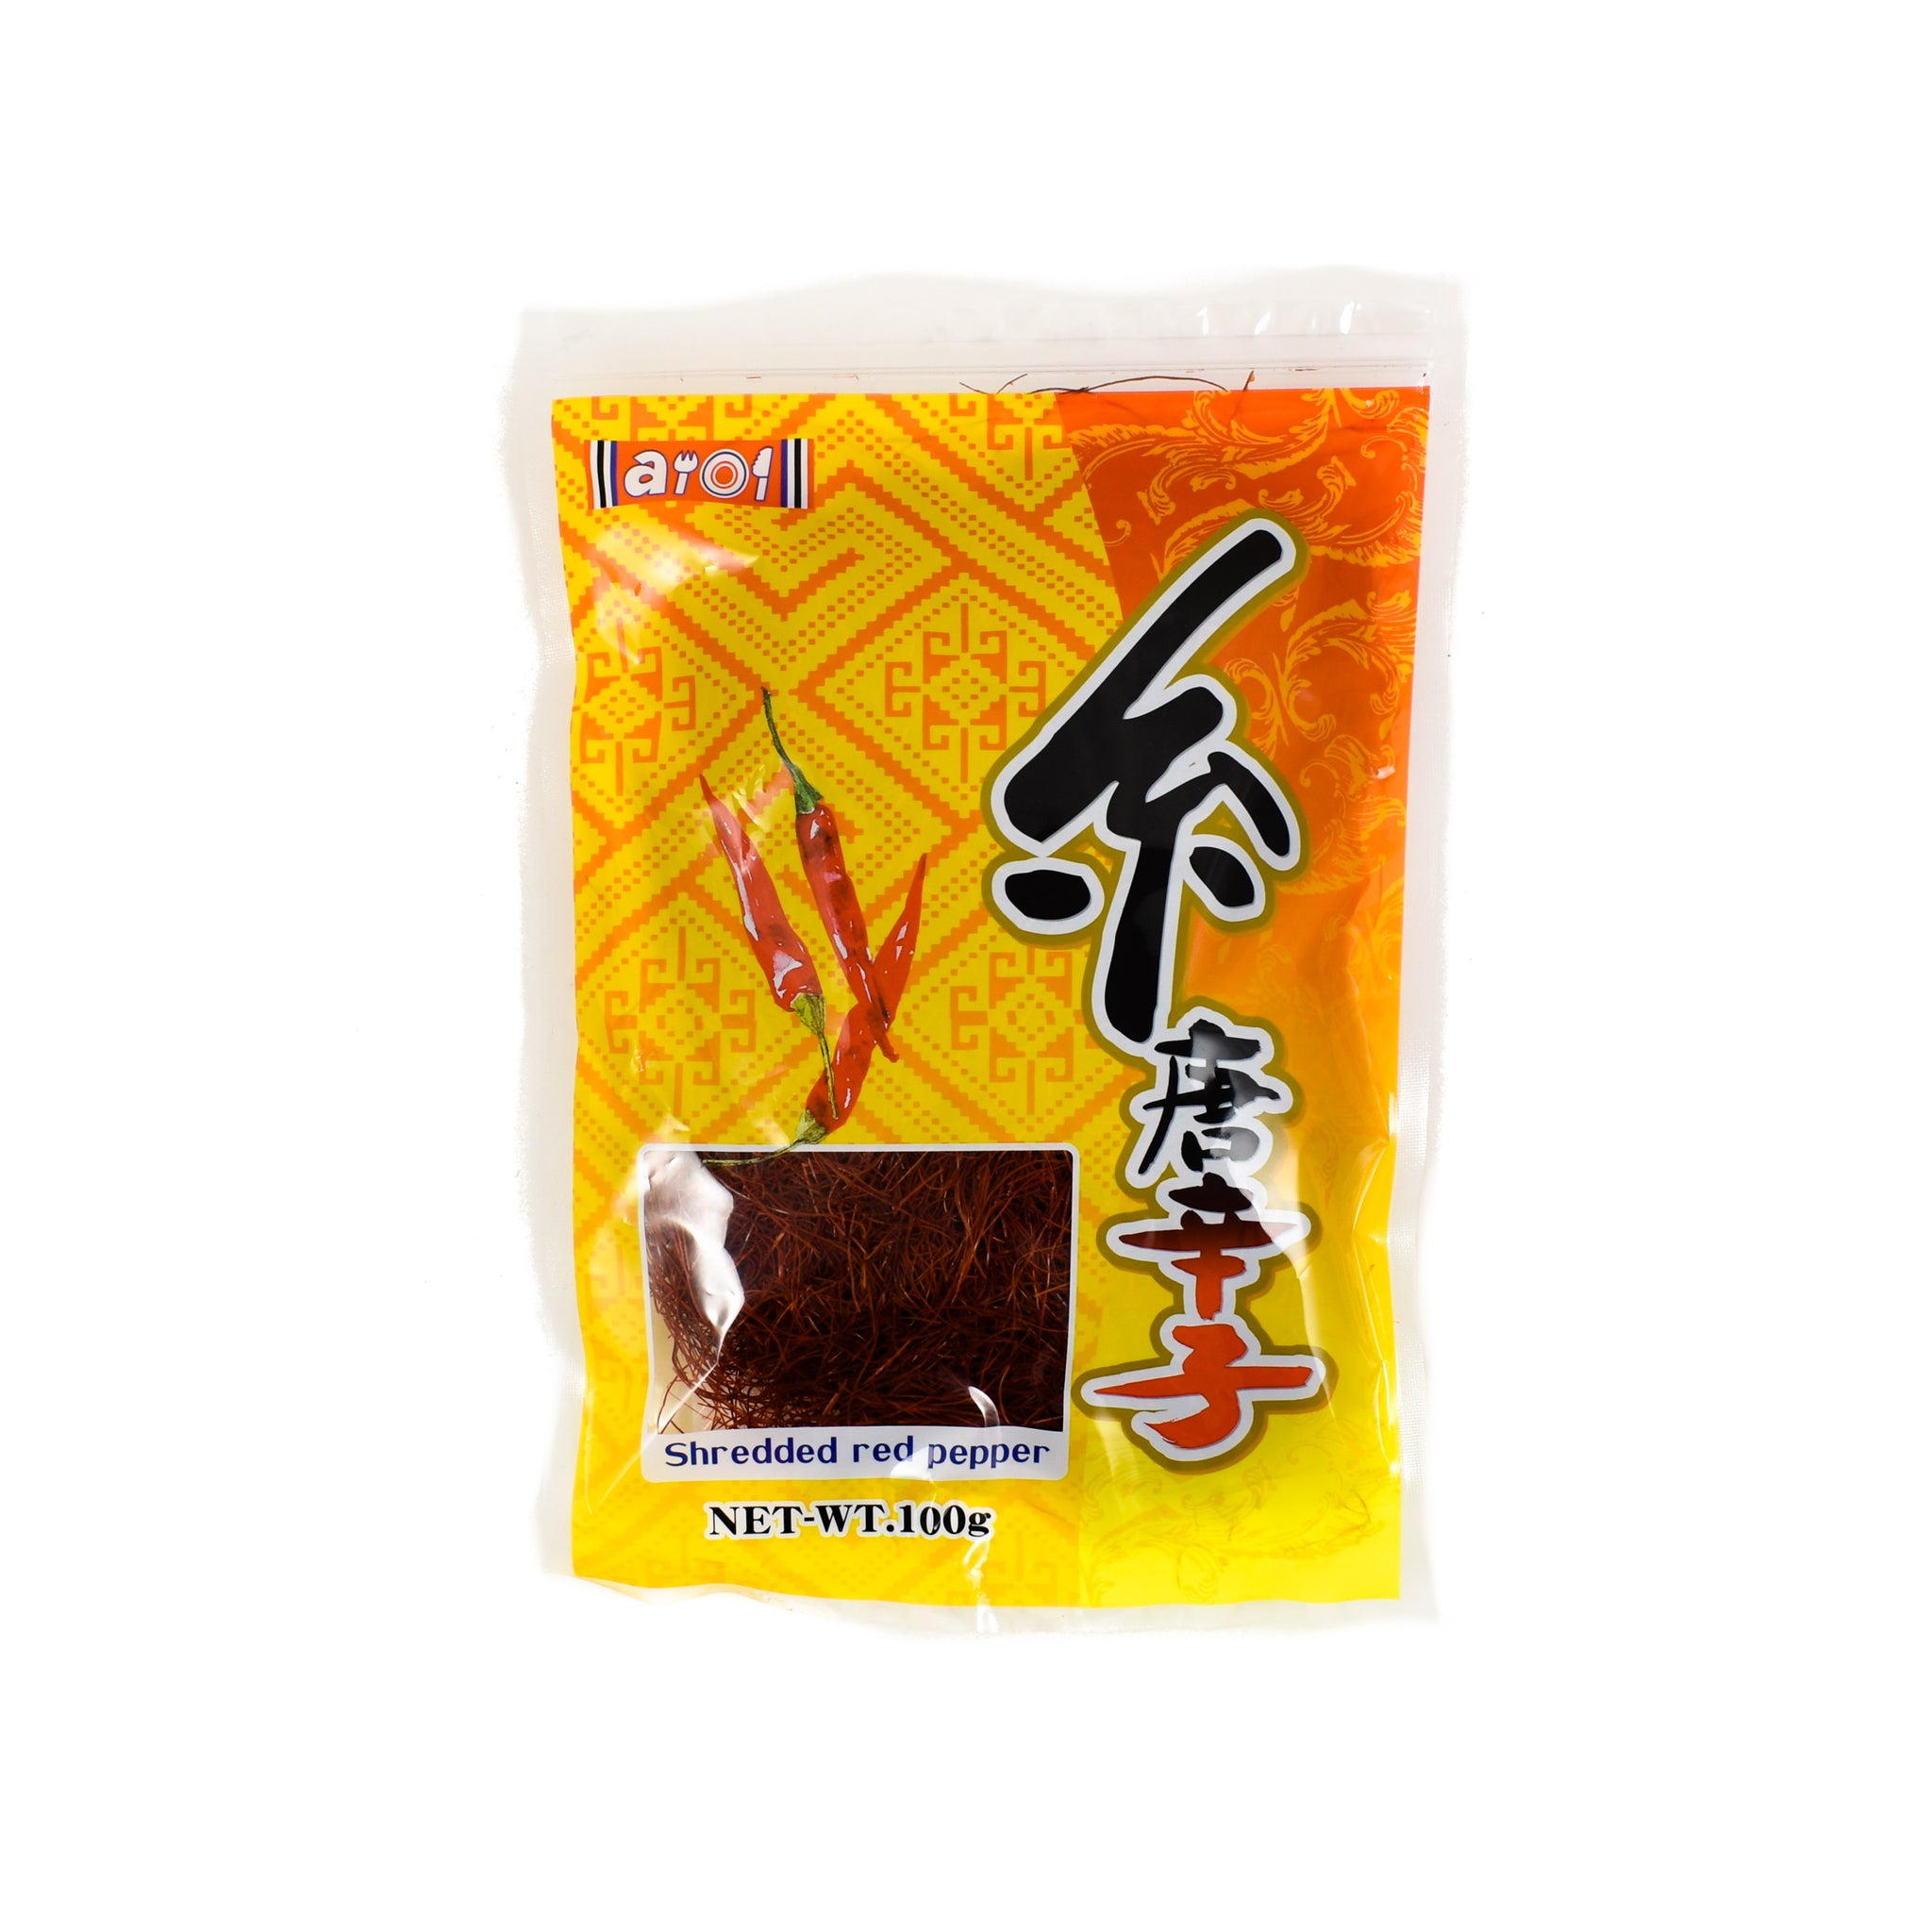 S&B Ito Togarashi - Sil Gochu 100g Ingredients Herbs & Spices Dried Chillies Japanese Food